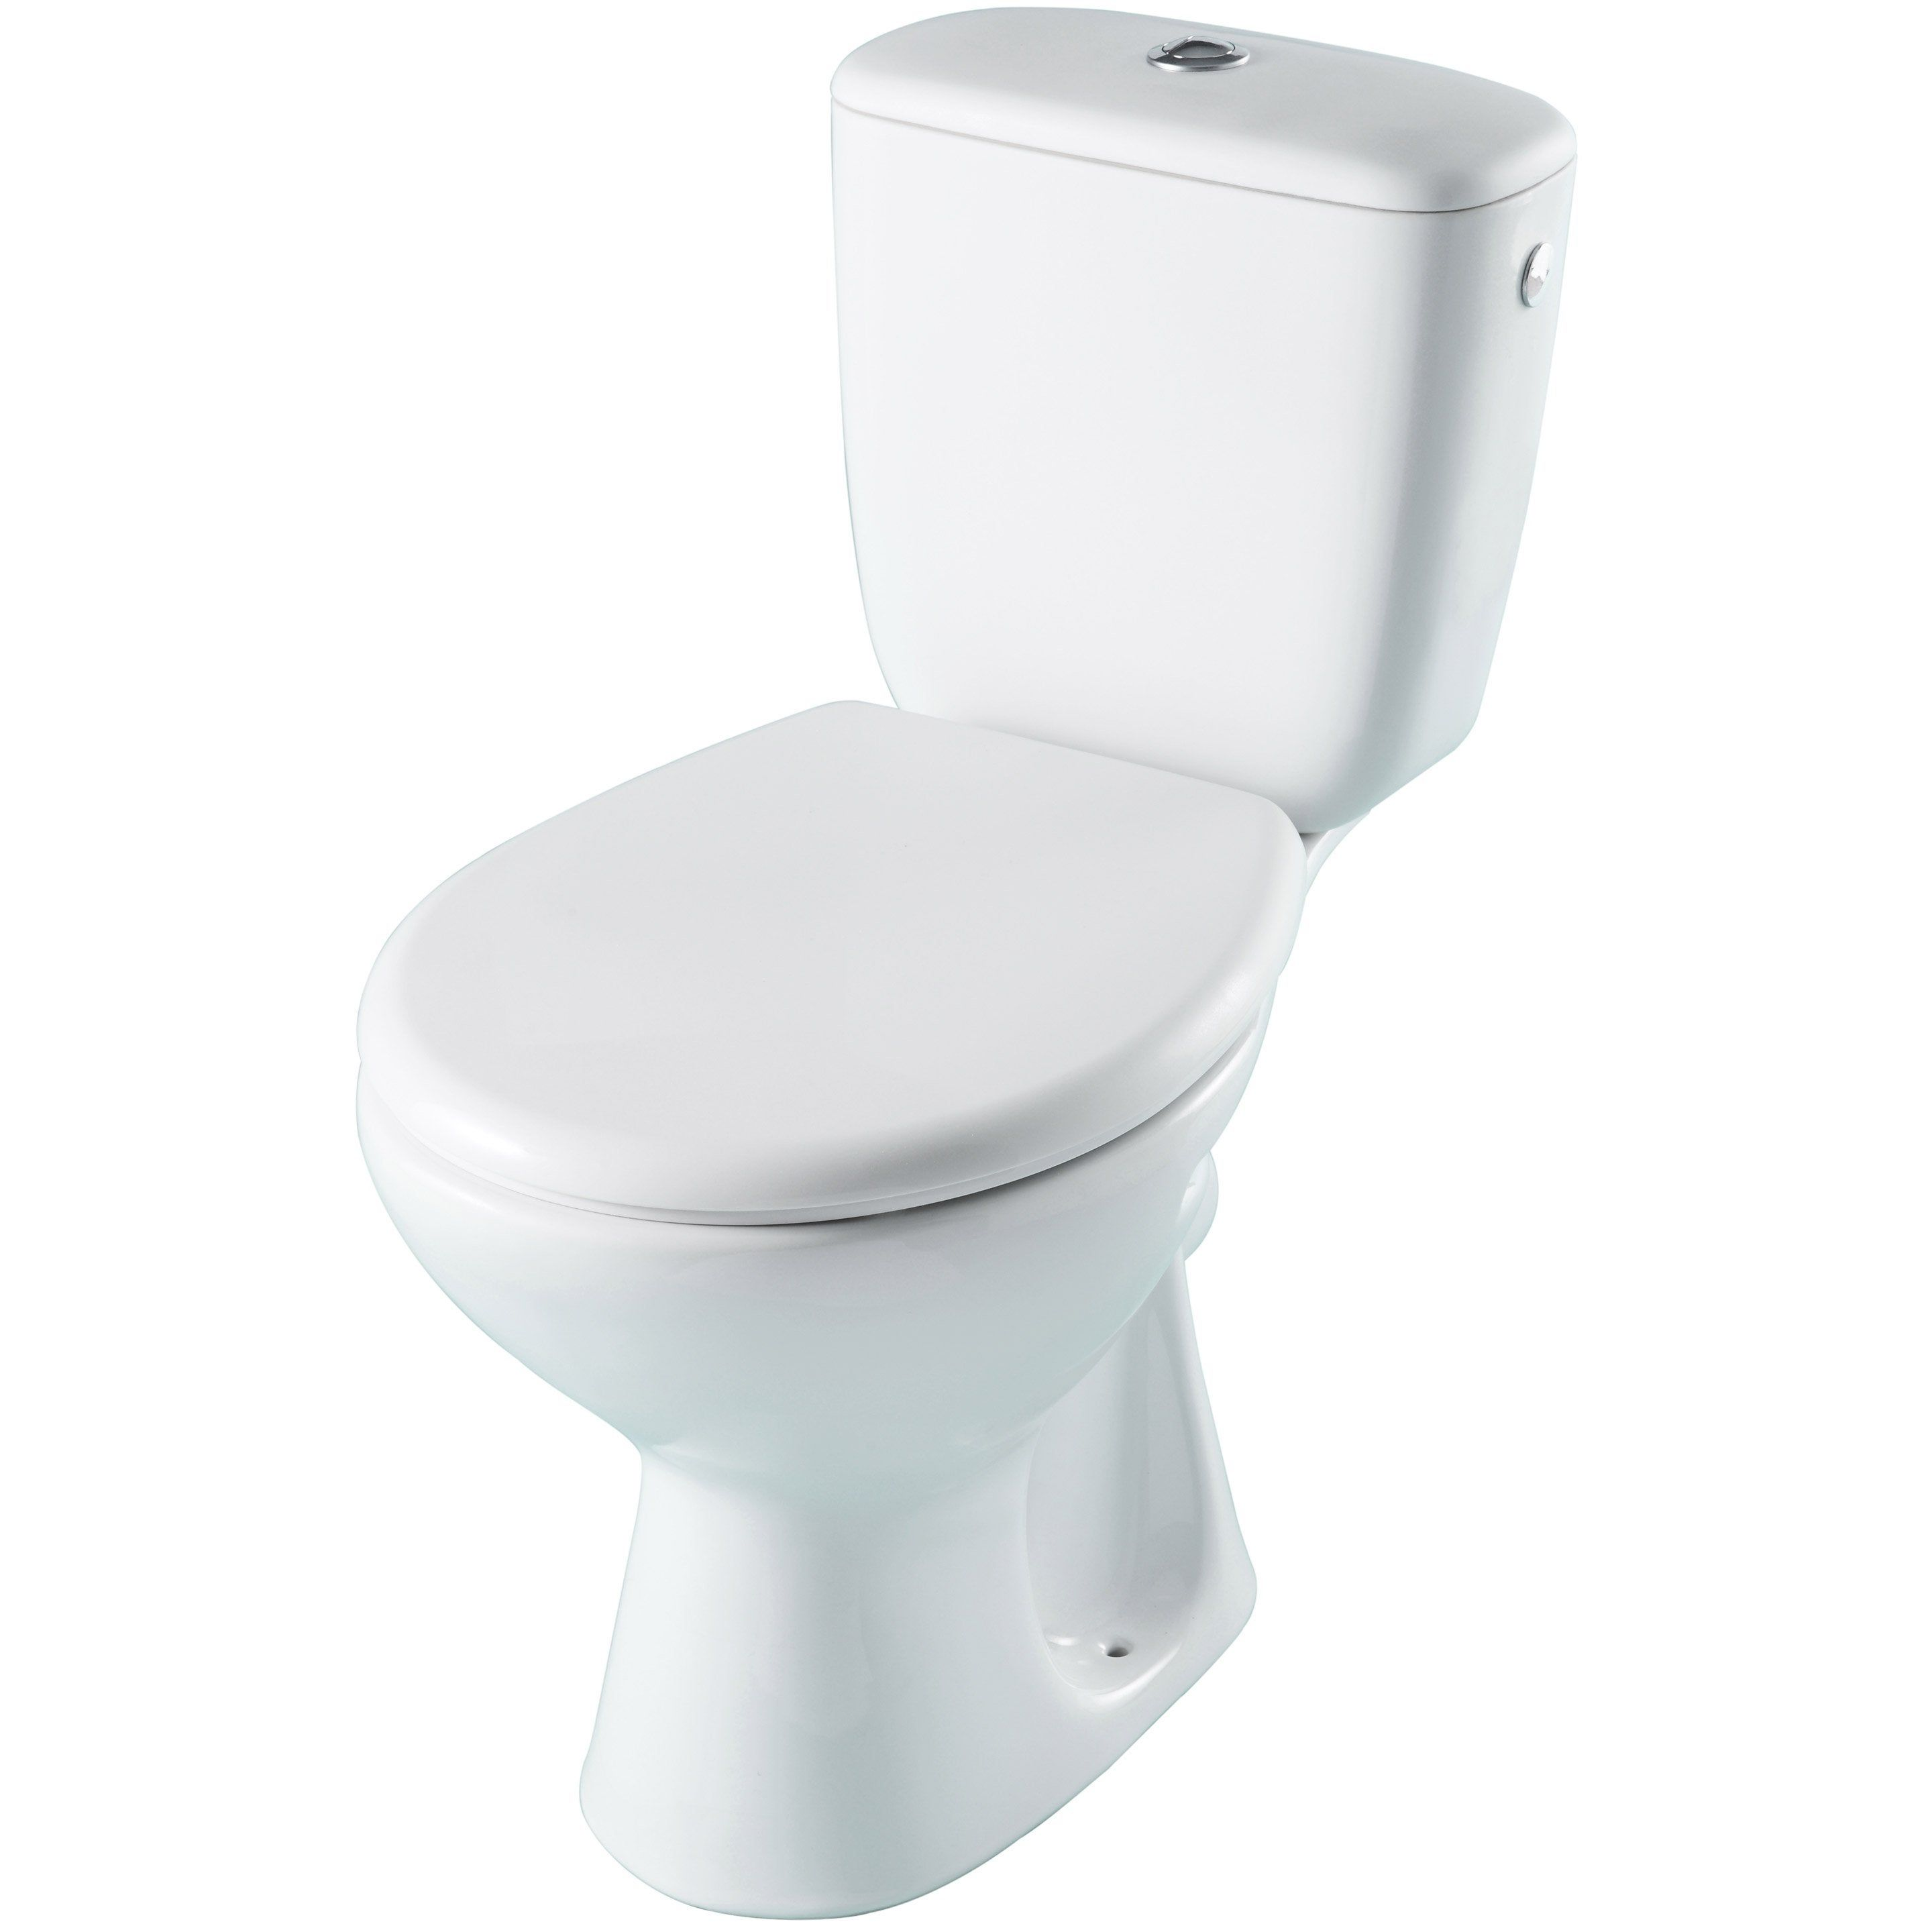 Pack Wc A Poser Sortie Horizontale Ouvert Sensea Essential Wc A Poser Pack Wc Toilettes